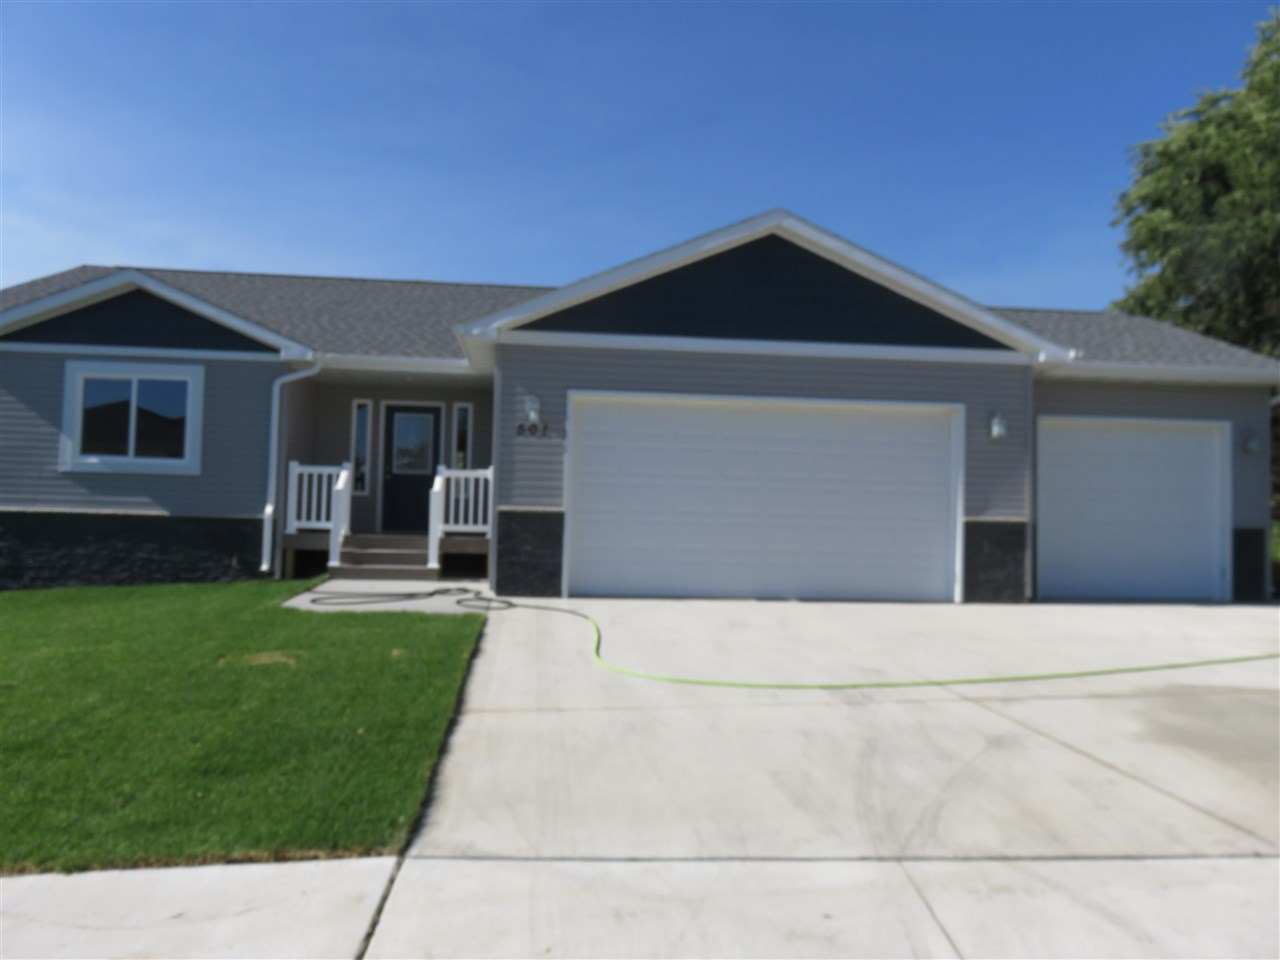 501 27TH ST NW, Minot, ND 58703